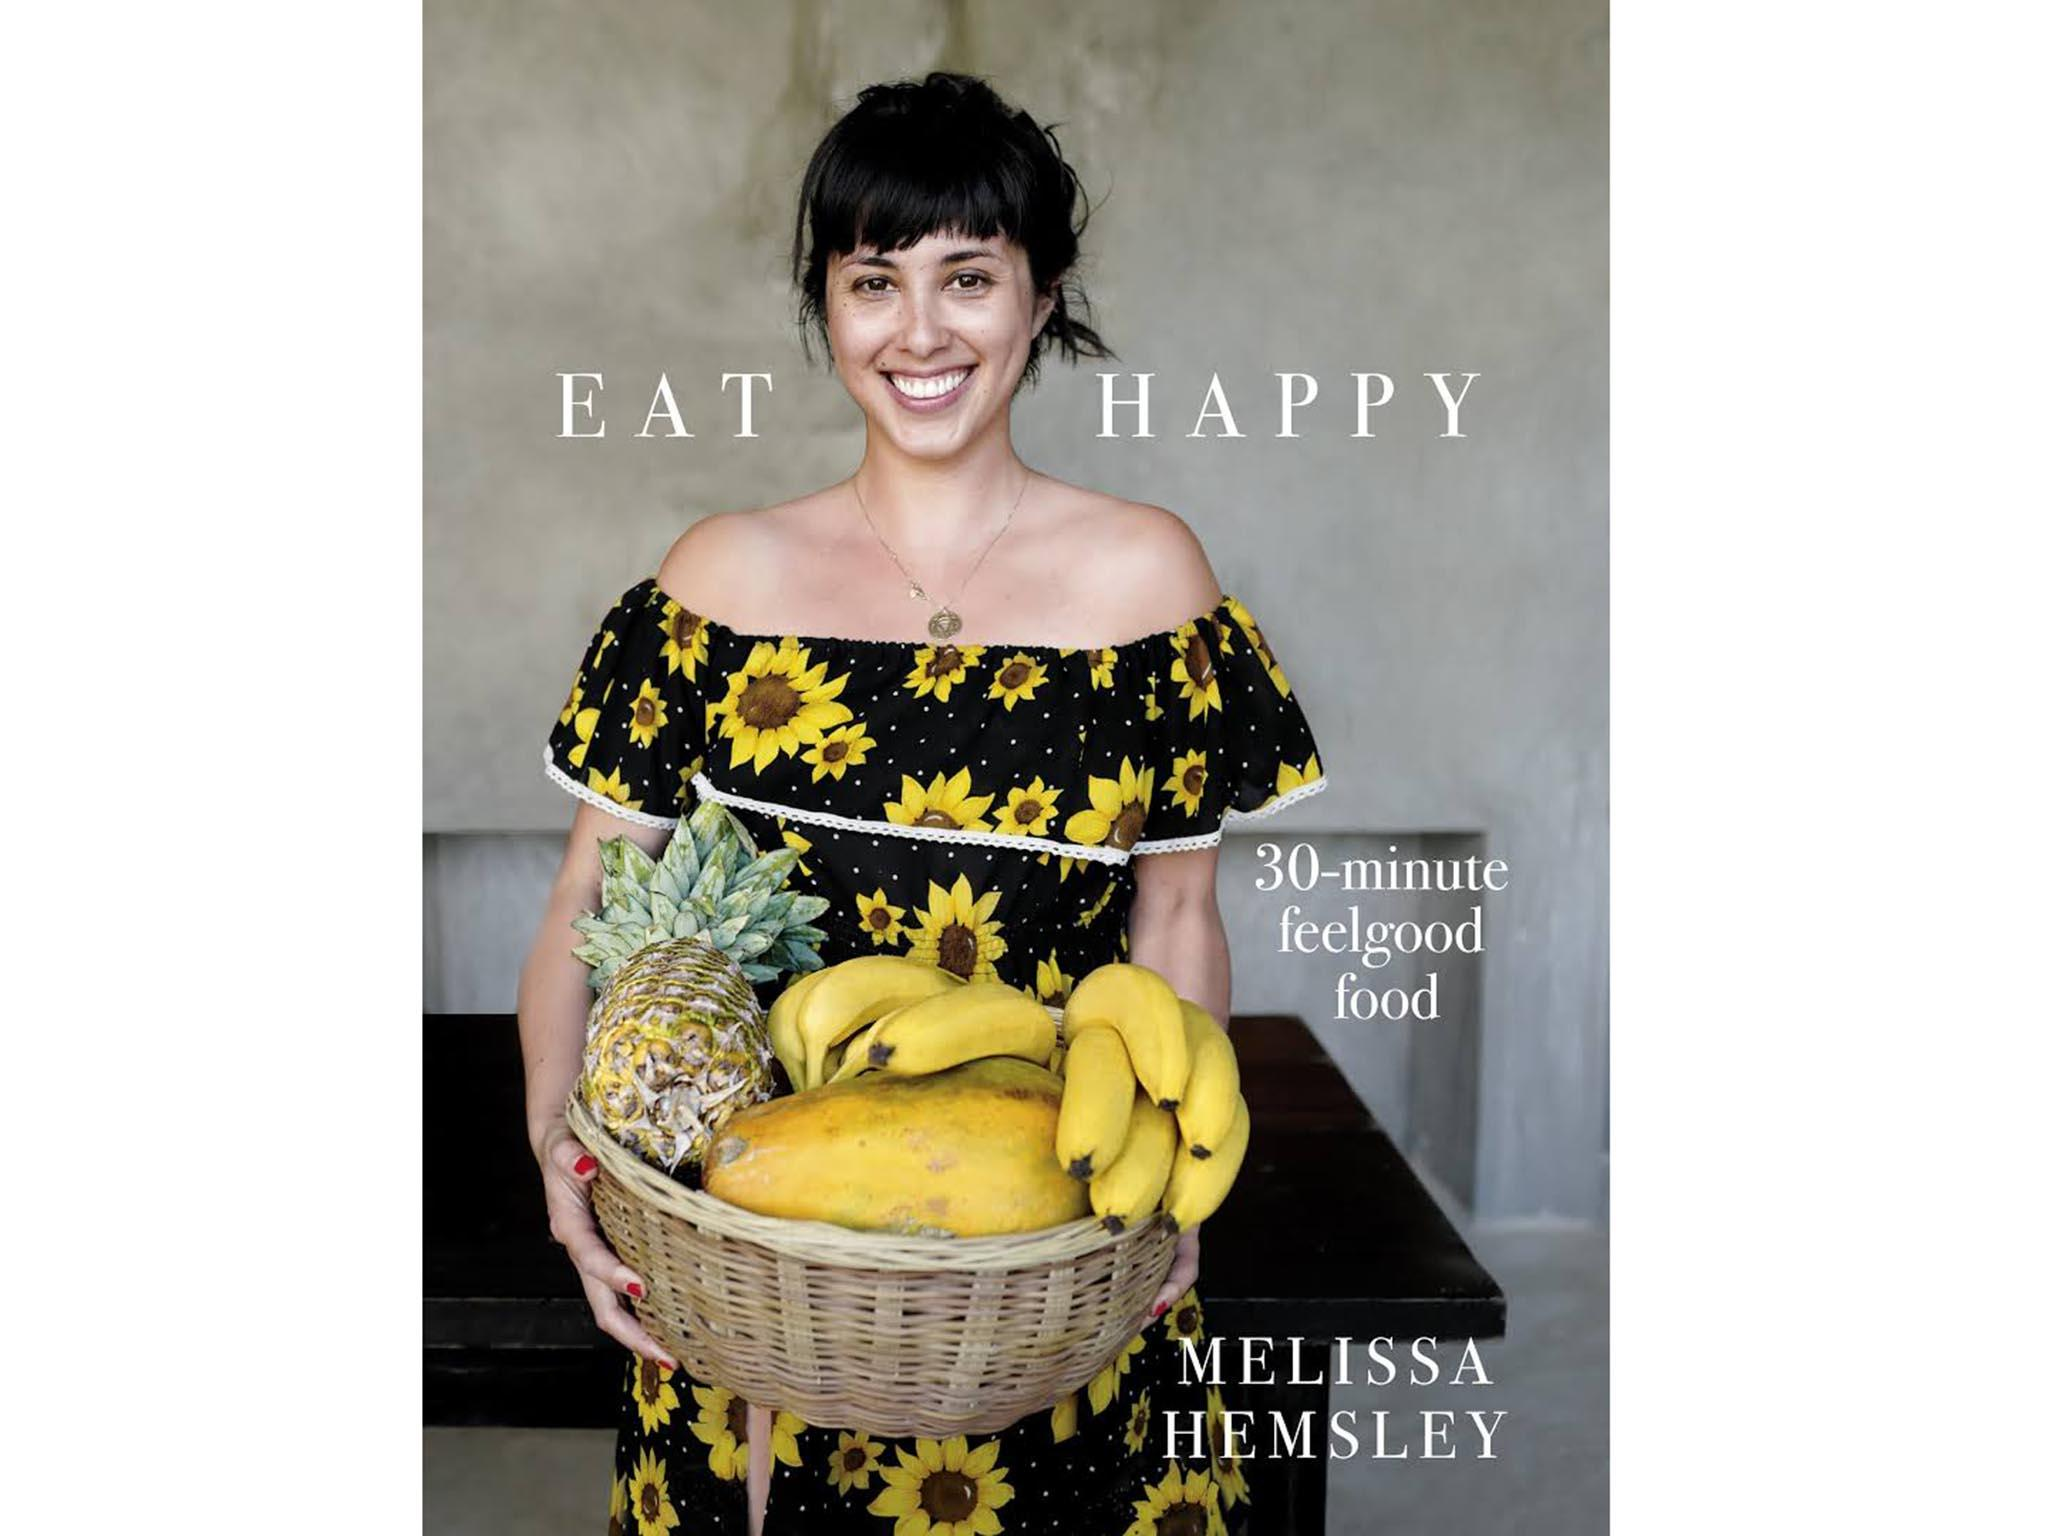 20 best new cookbooks of 2018 | The Independent